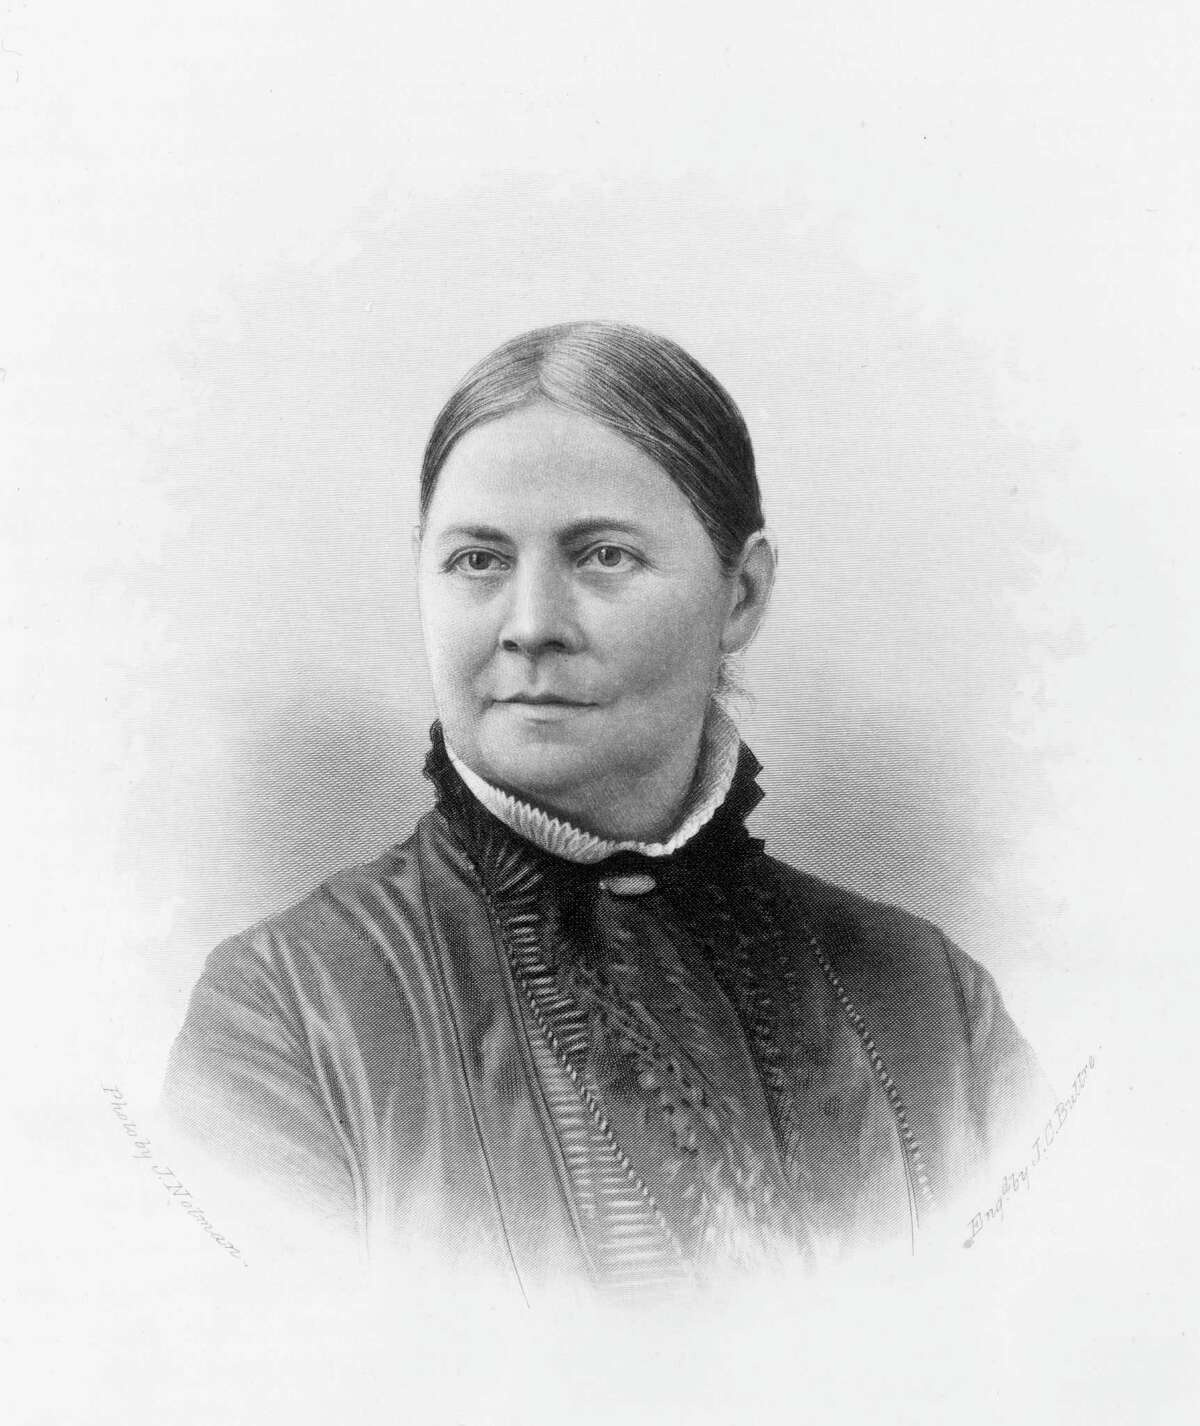 circa 1865: Lucy Stone (1818 - 1893). American suffragist who lectured on women's rights and the abolition of slavery. She organized the first National Women's Rights Convention, the New Jersey Woman Suffrage Association and was coeditor of 'Woman's Journal.' Original Artwork: Engraving by J C Buttre from the photo by J Nolan.